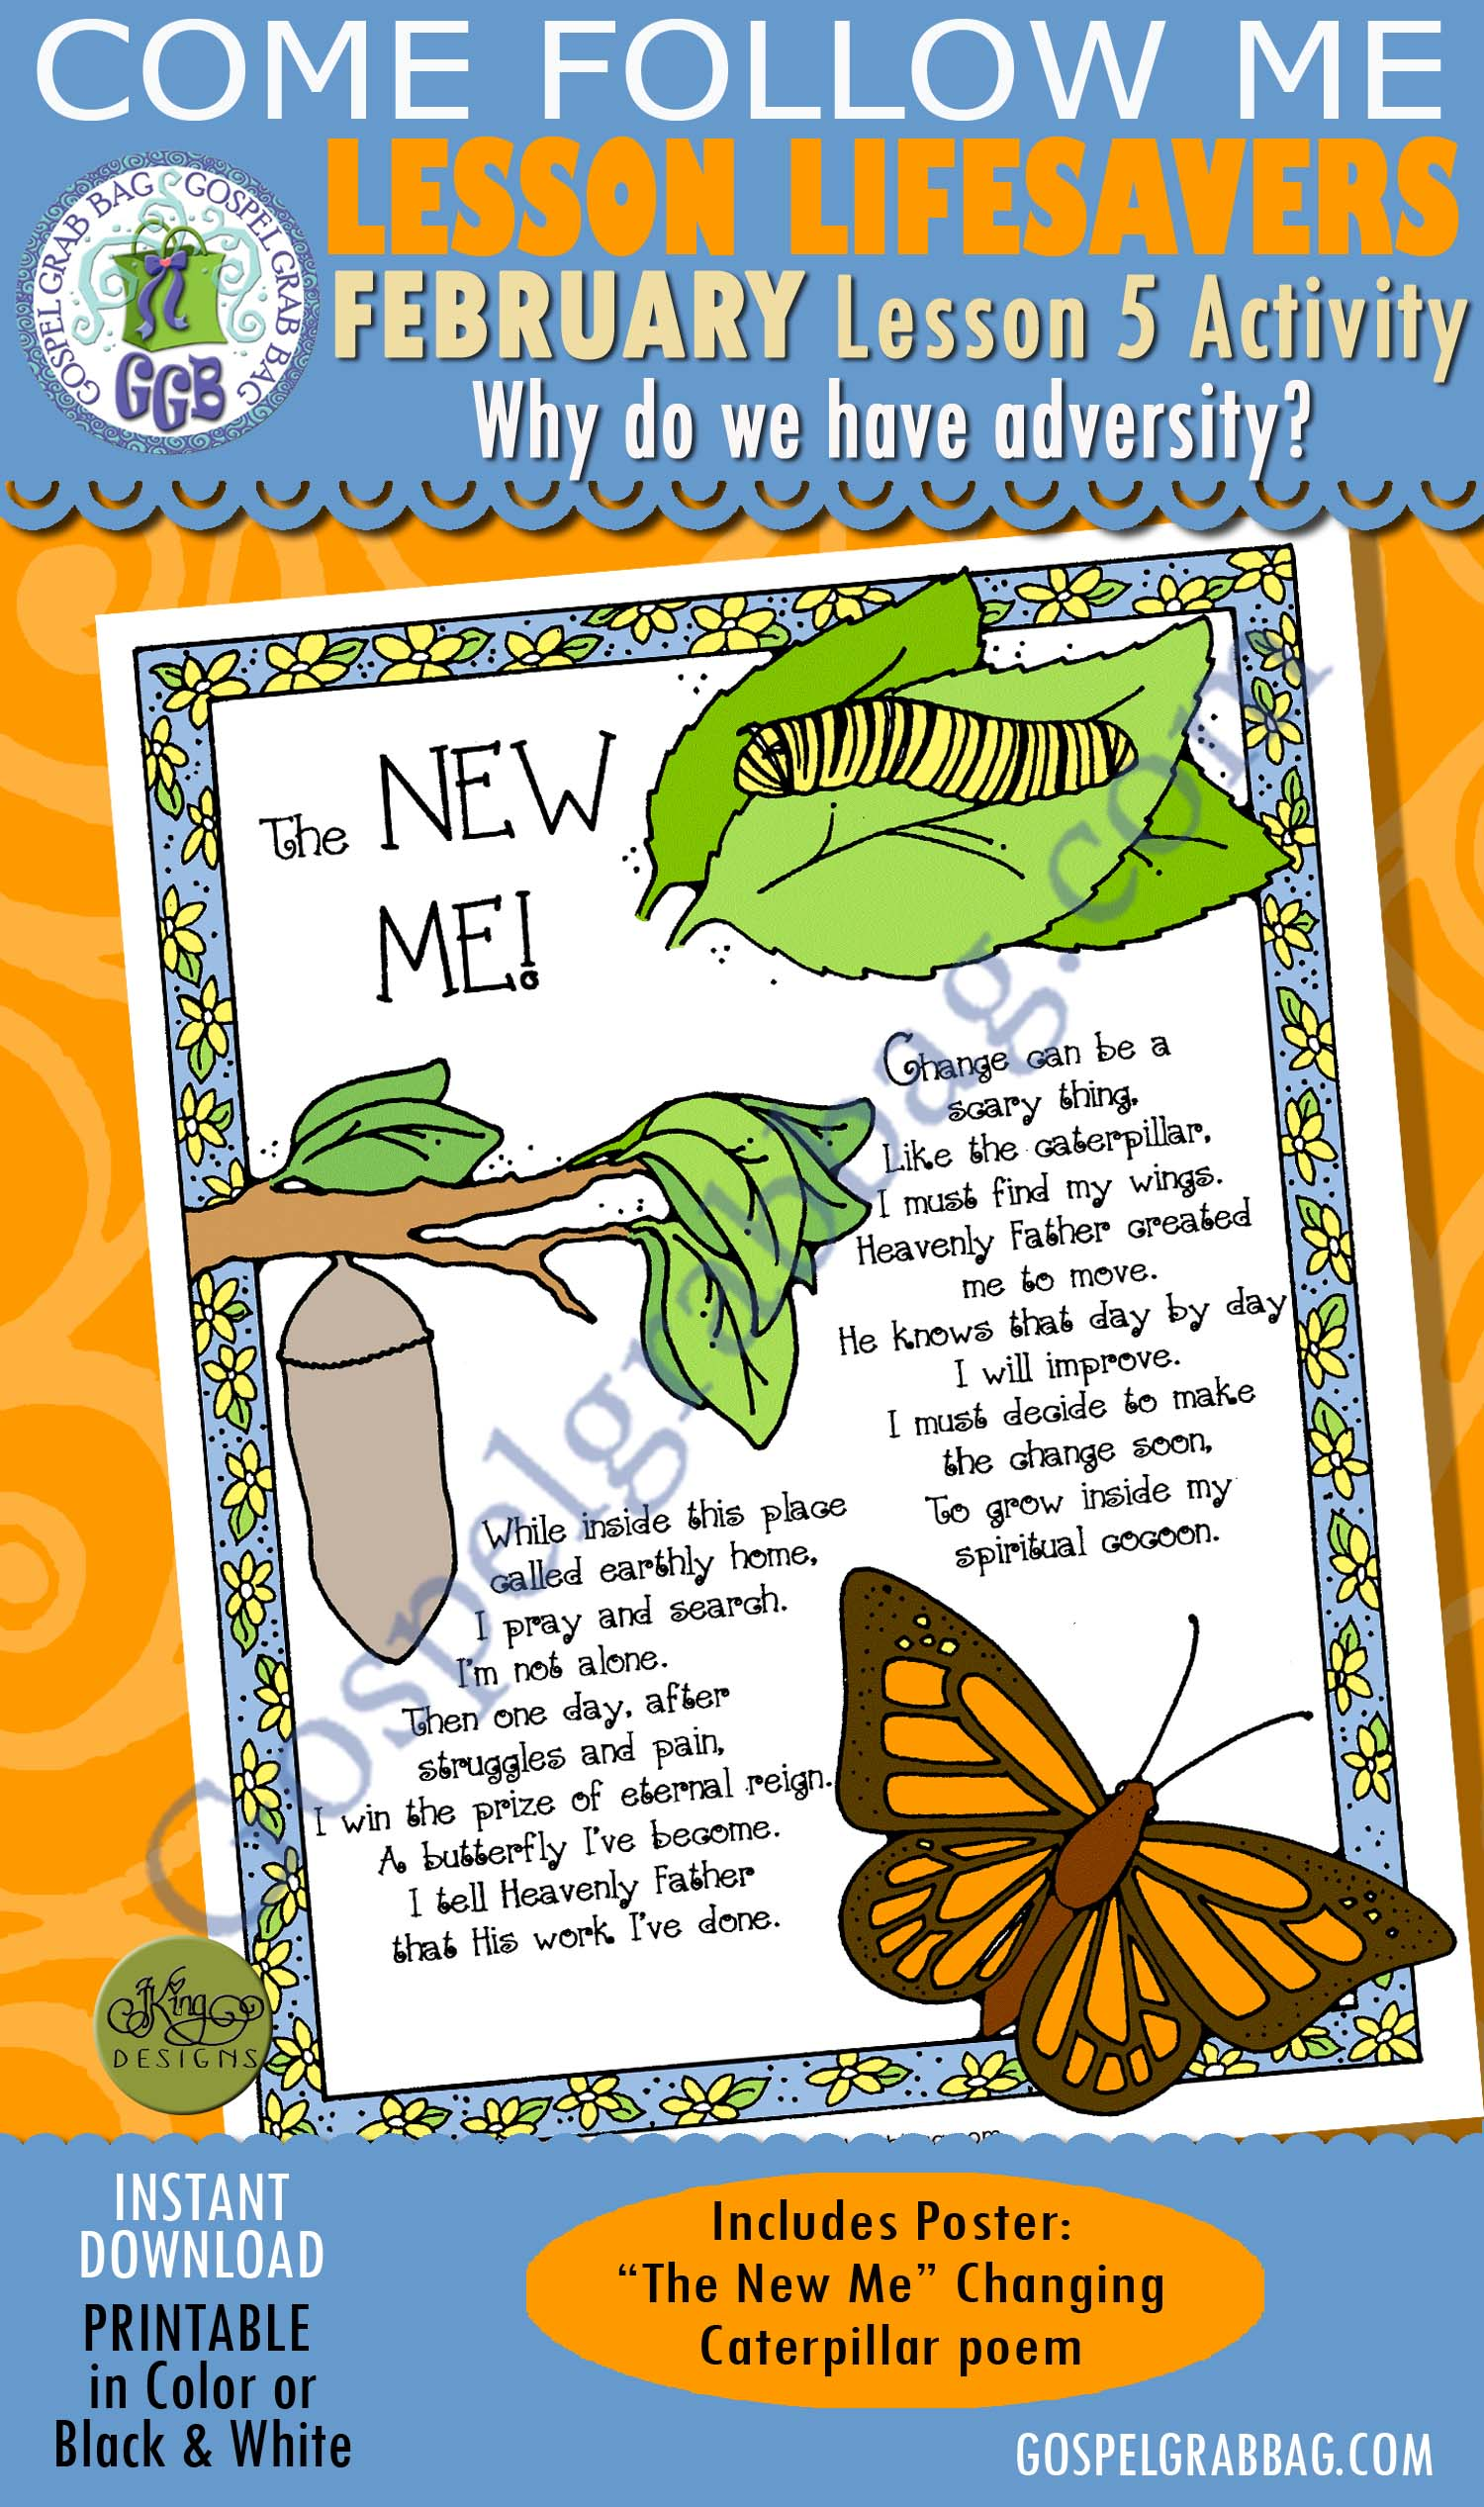 "$1.75 February Lesson 5 Come Follow Me ""Why do we have adversity?"" ACTIVITY: The New Me! Changing Caterpillar poem poster, Young Women handouts, GospelGrabBag.com"